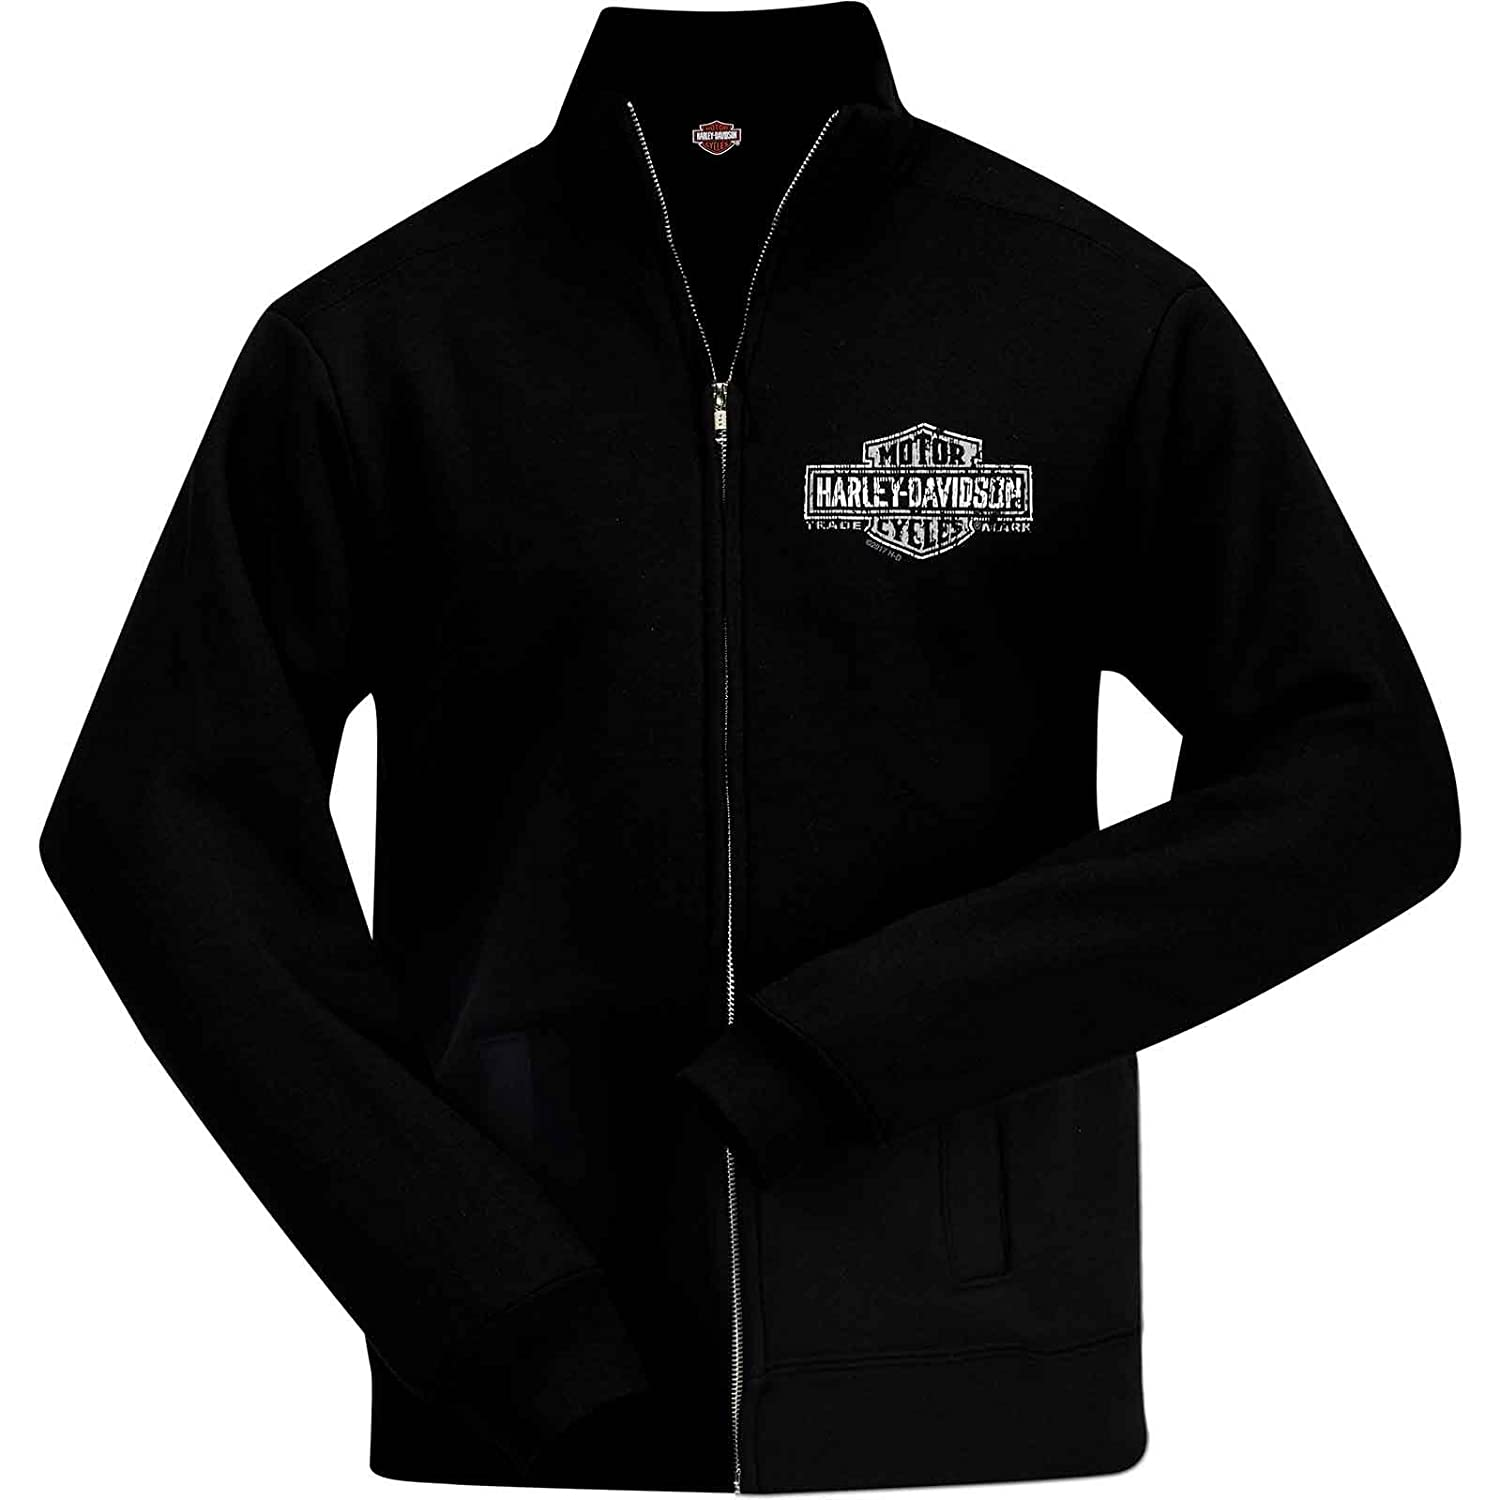 Harley-Davidson Military - Trade Mark No Hood Zip Sweatjacket - Overseas Tour